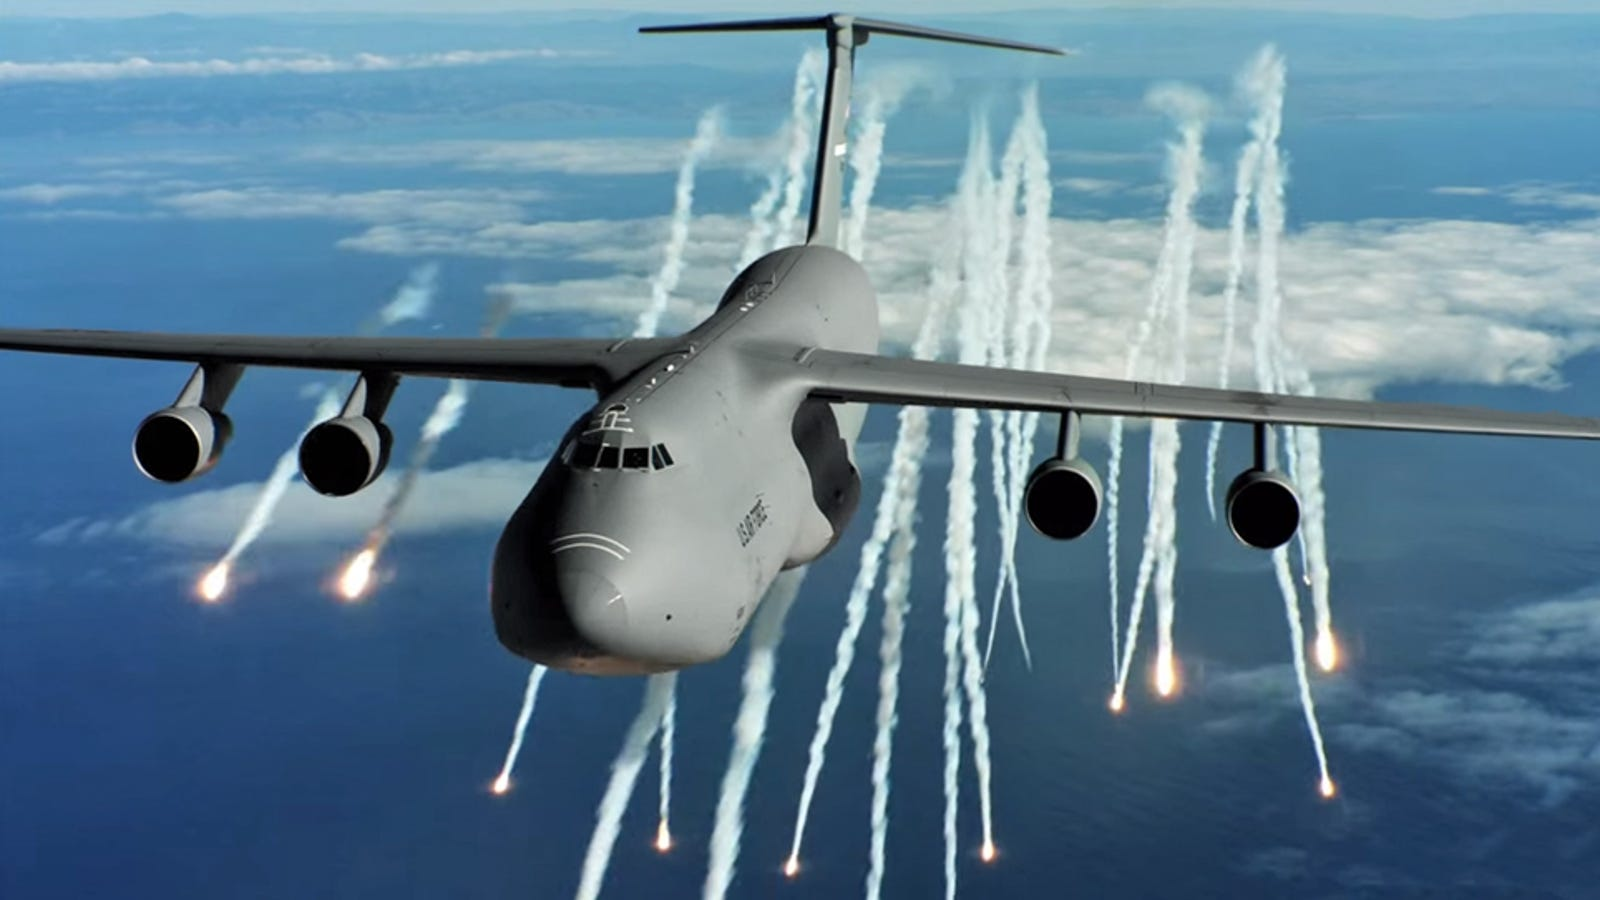 What Its Like To Fly Americas Biggest Jet The Gargantuan C 5 Galaxy Aircraft Hydraulic System Intelligent Diagrams